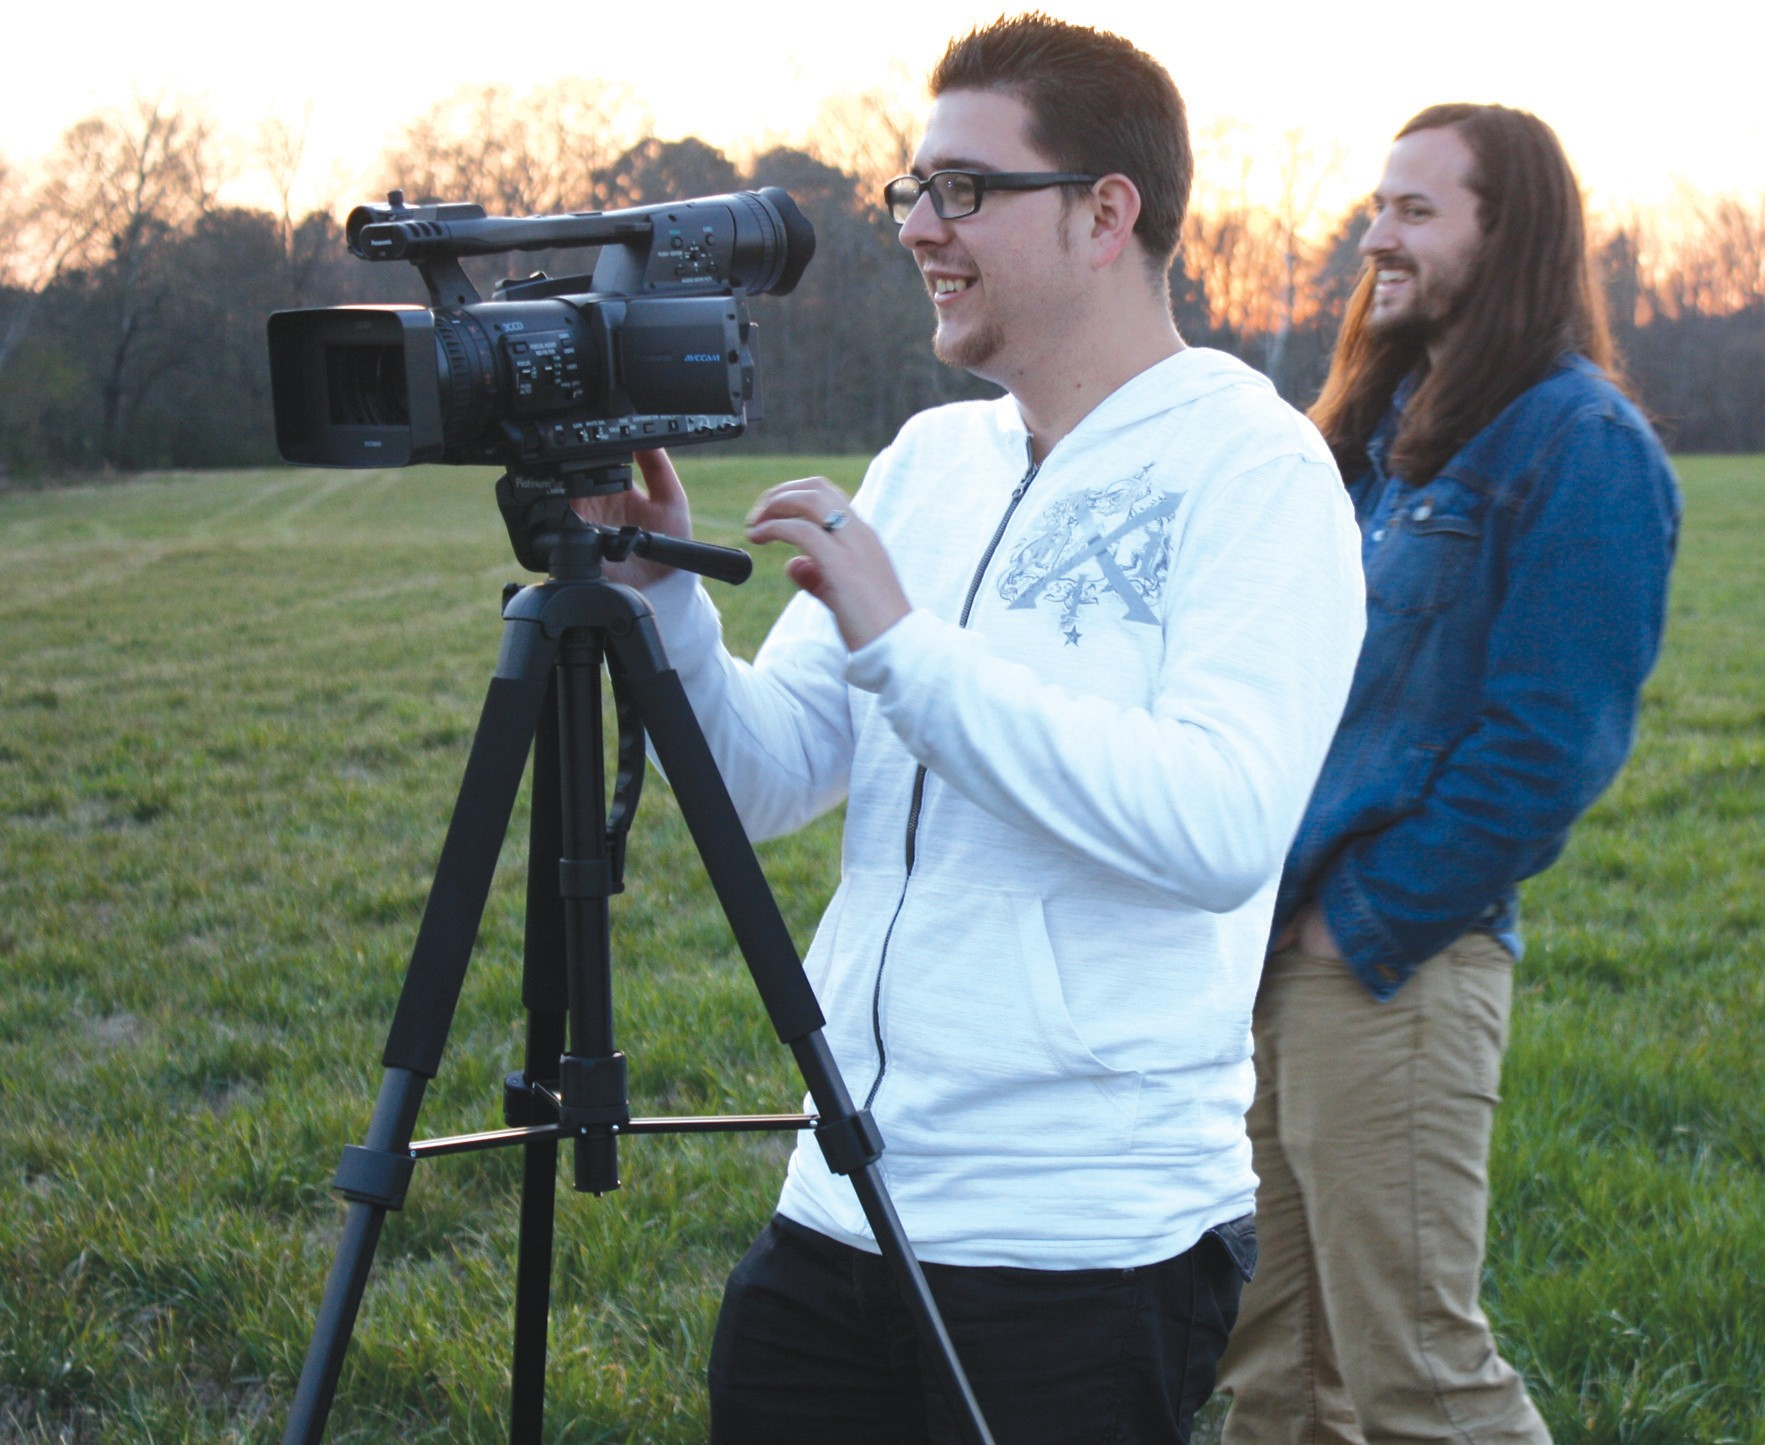 """Director Scott Duarte films a scene for his film """"Project Urban Legend,"""" along with his friend, Stuart Sanders, who is not only in the film, but also welcomed Duarte to film on his family's property in Oneonta."""